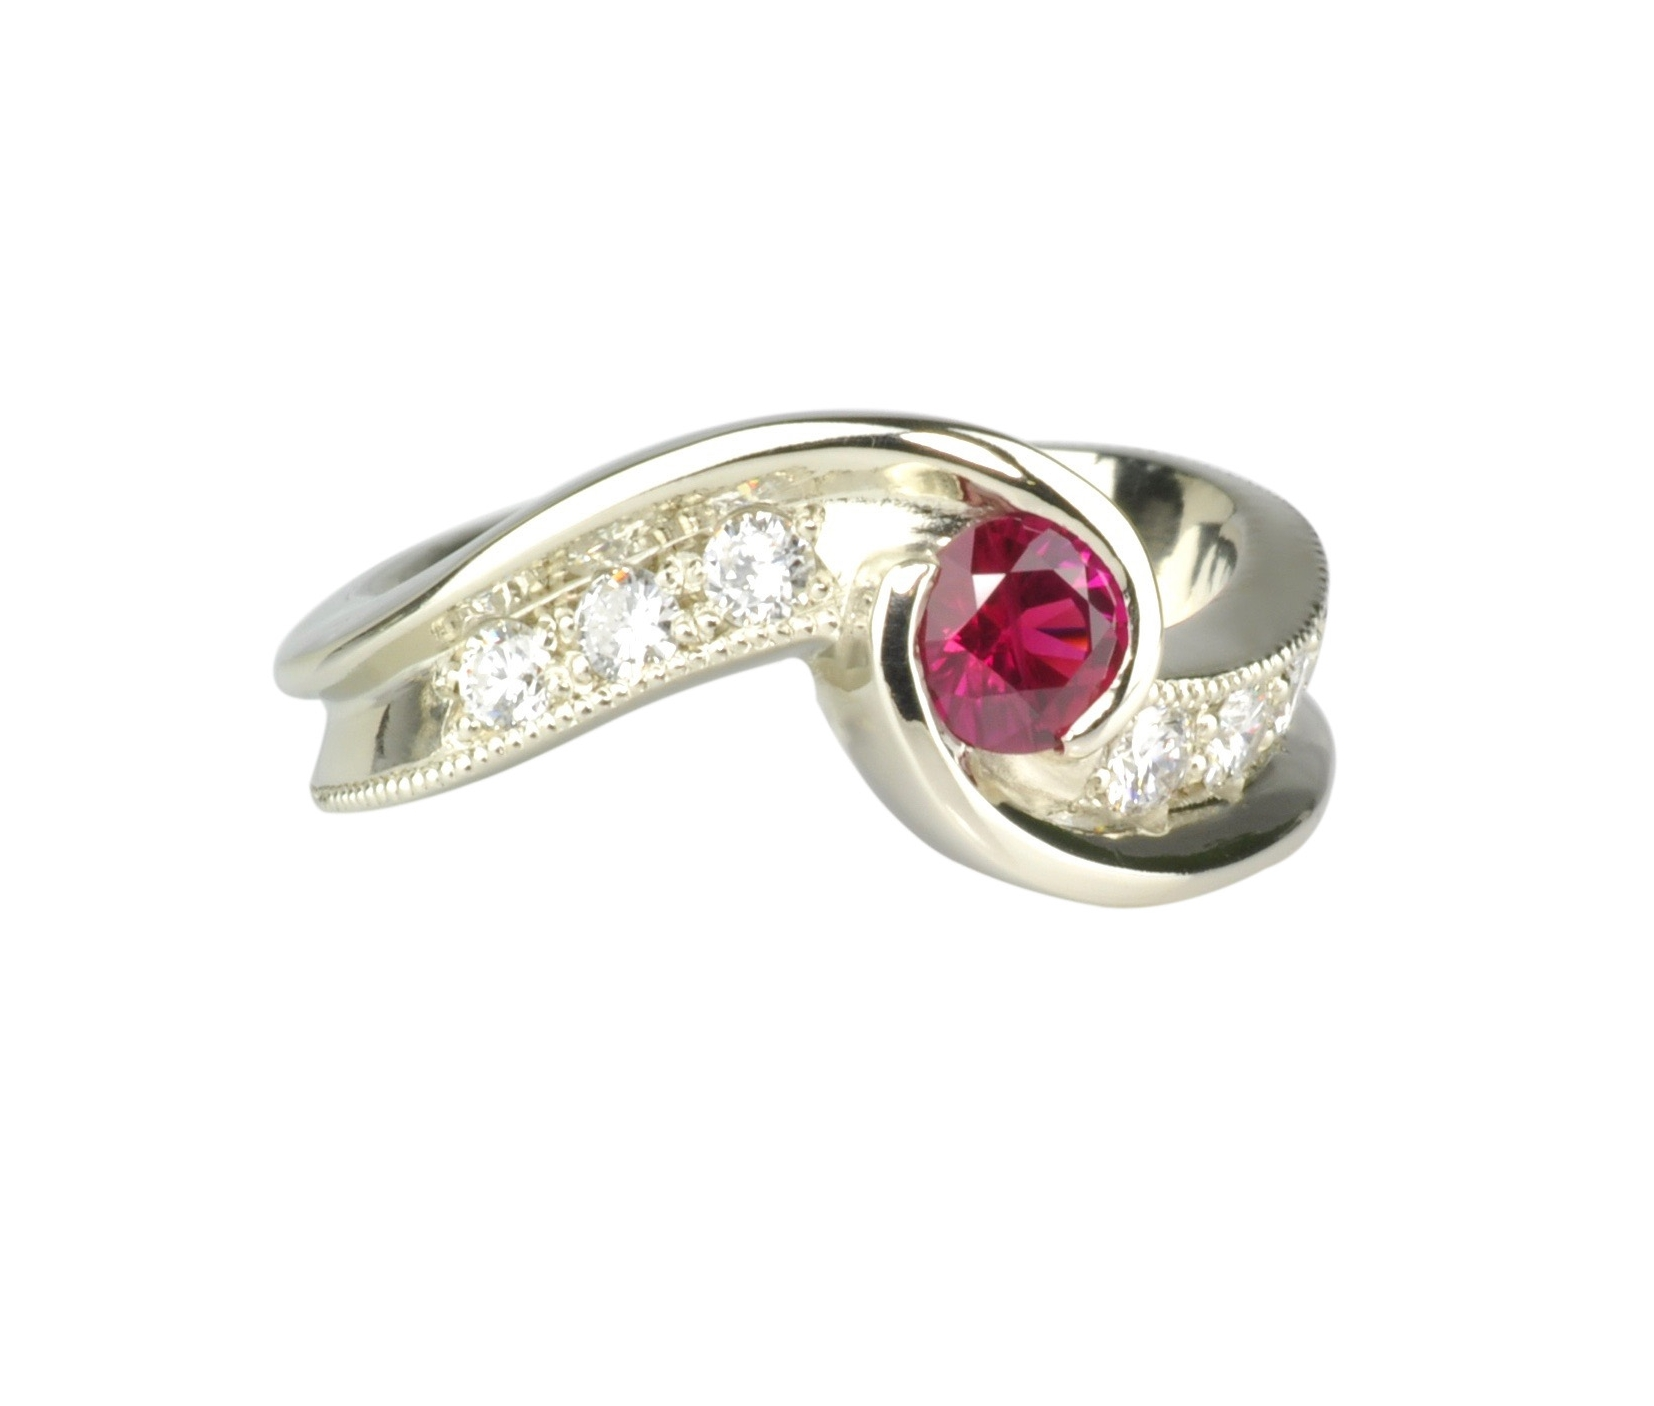 14k White Gold Burmese Ruby Ring with Diamonds